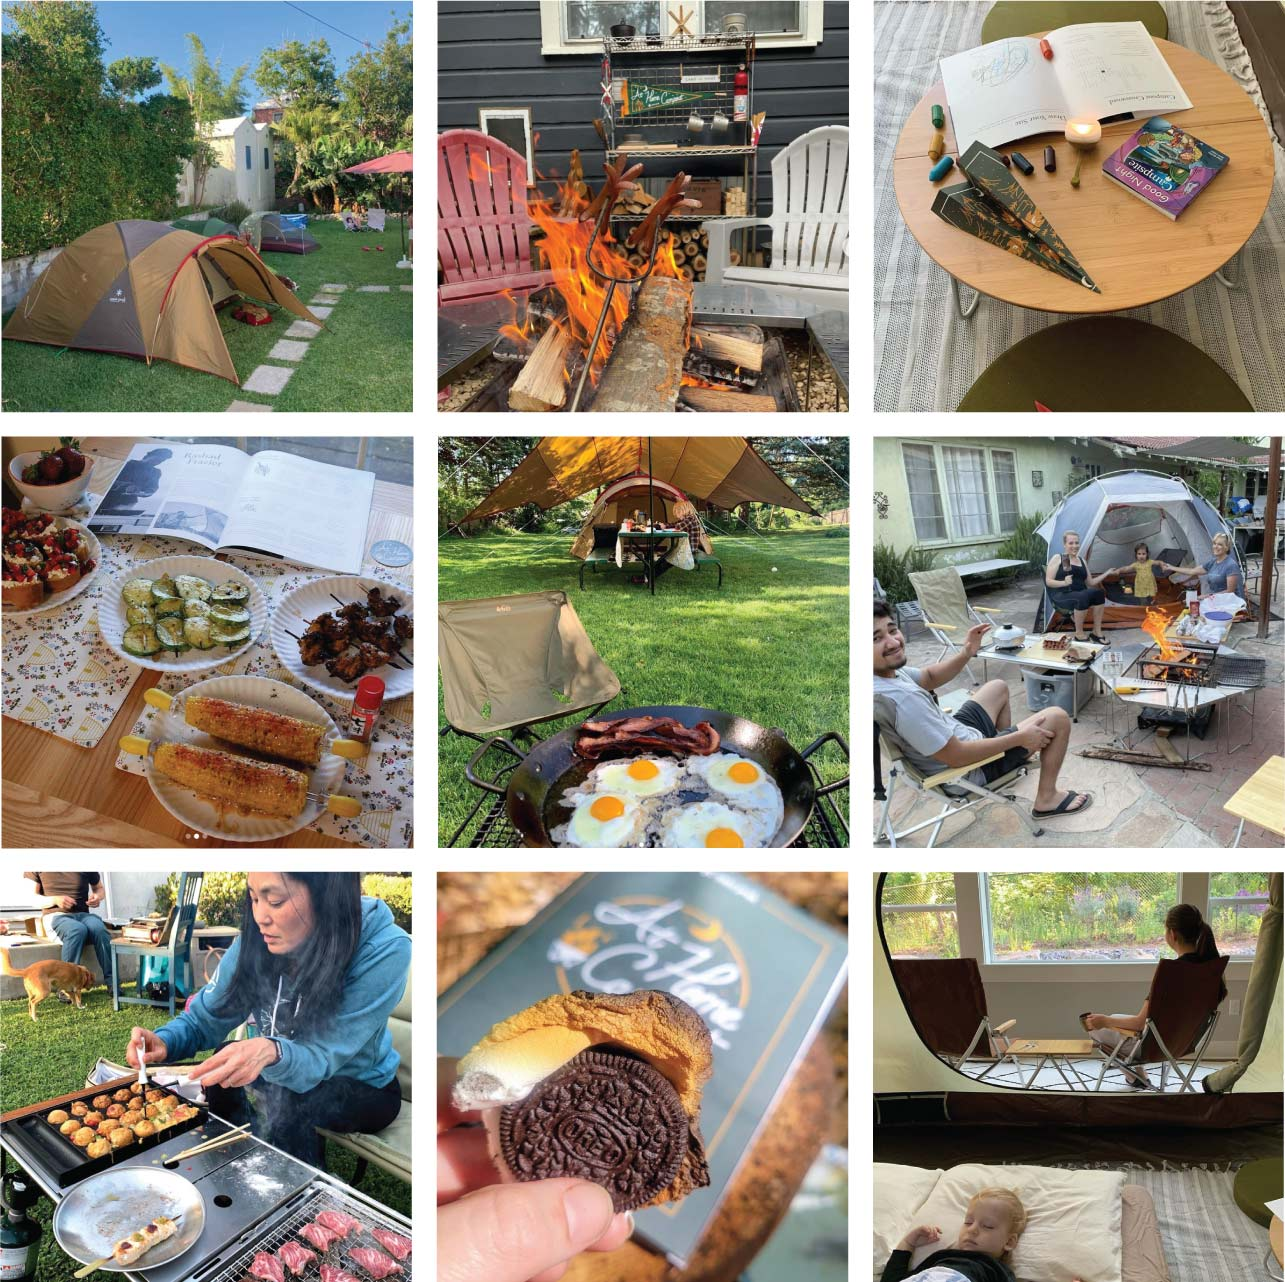 Grid of nine images submitted by Snow Peakers of their At Home Campout experience.